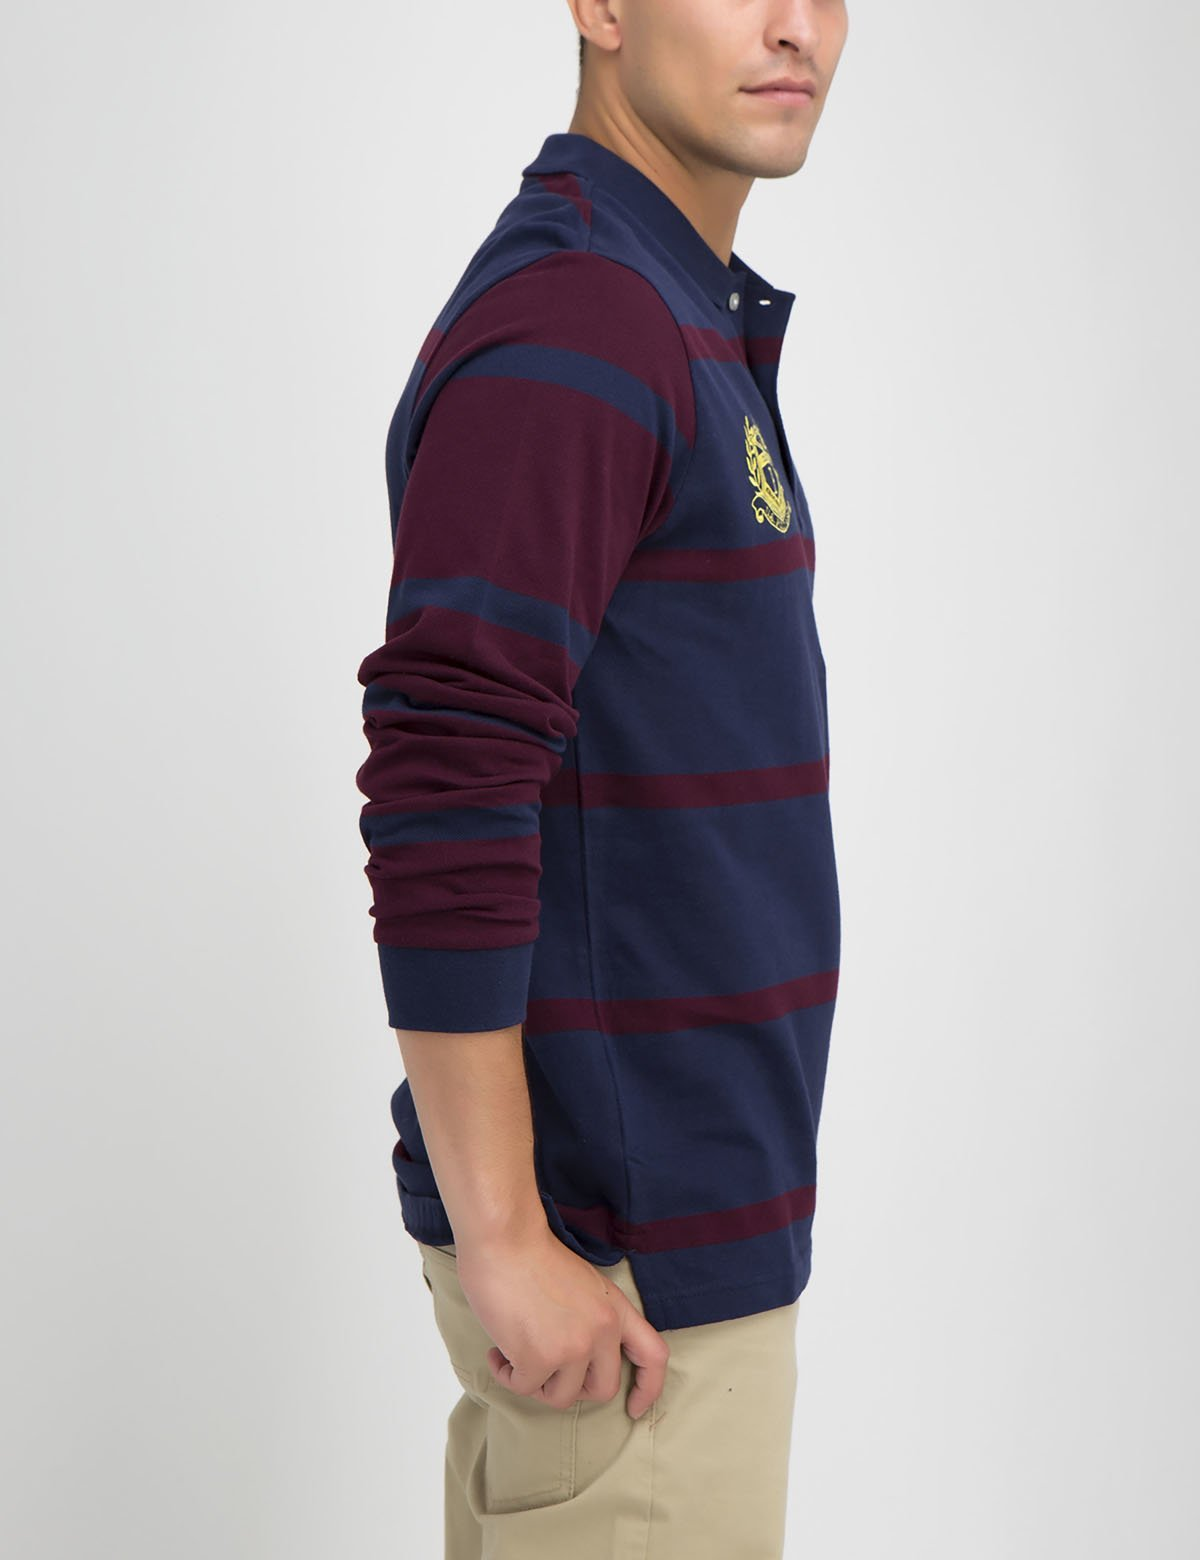 Contrast stripe long sleeve polo shirt - U.S. Polo Assn.